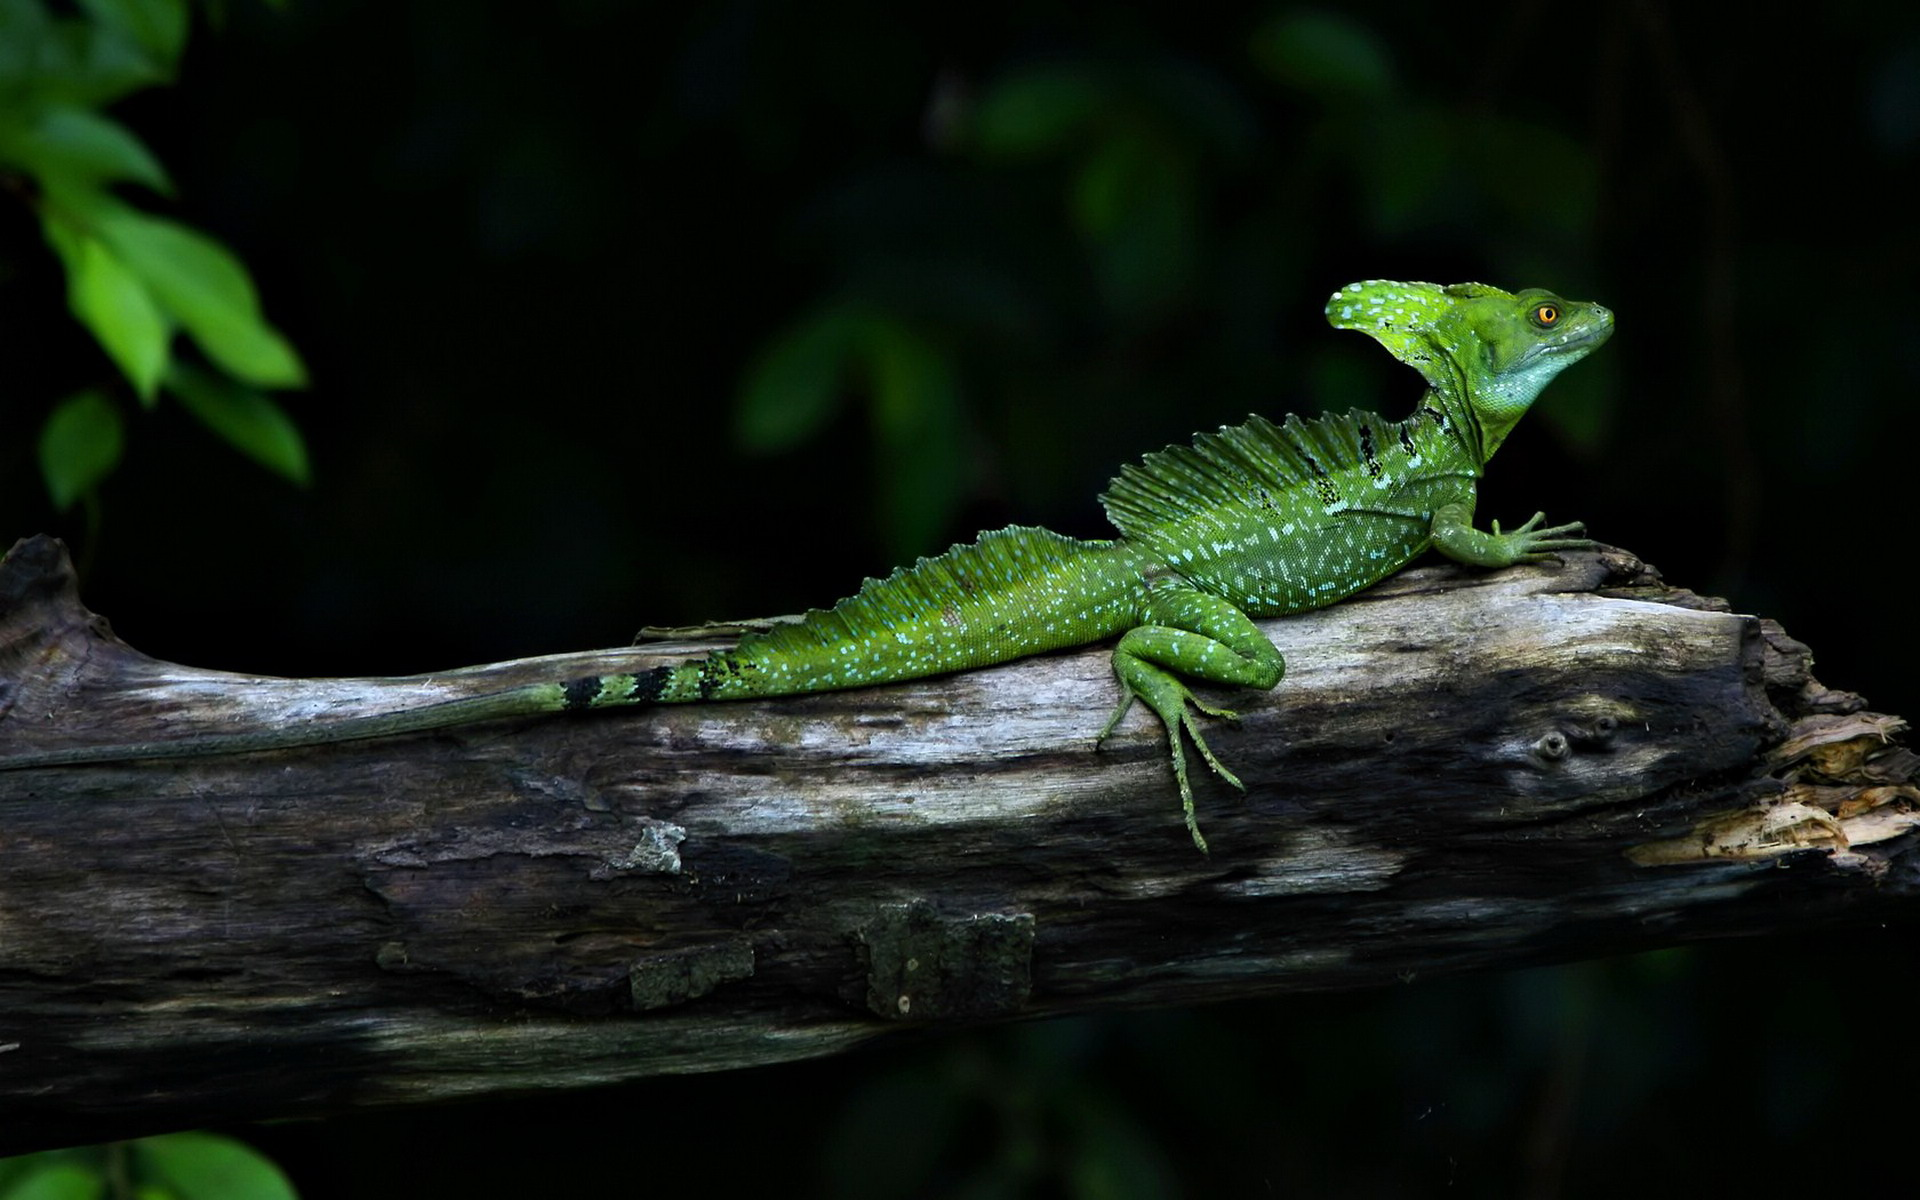 Green Basilisk Lizard wallpaper | 1920x1200 | #13296